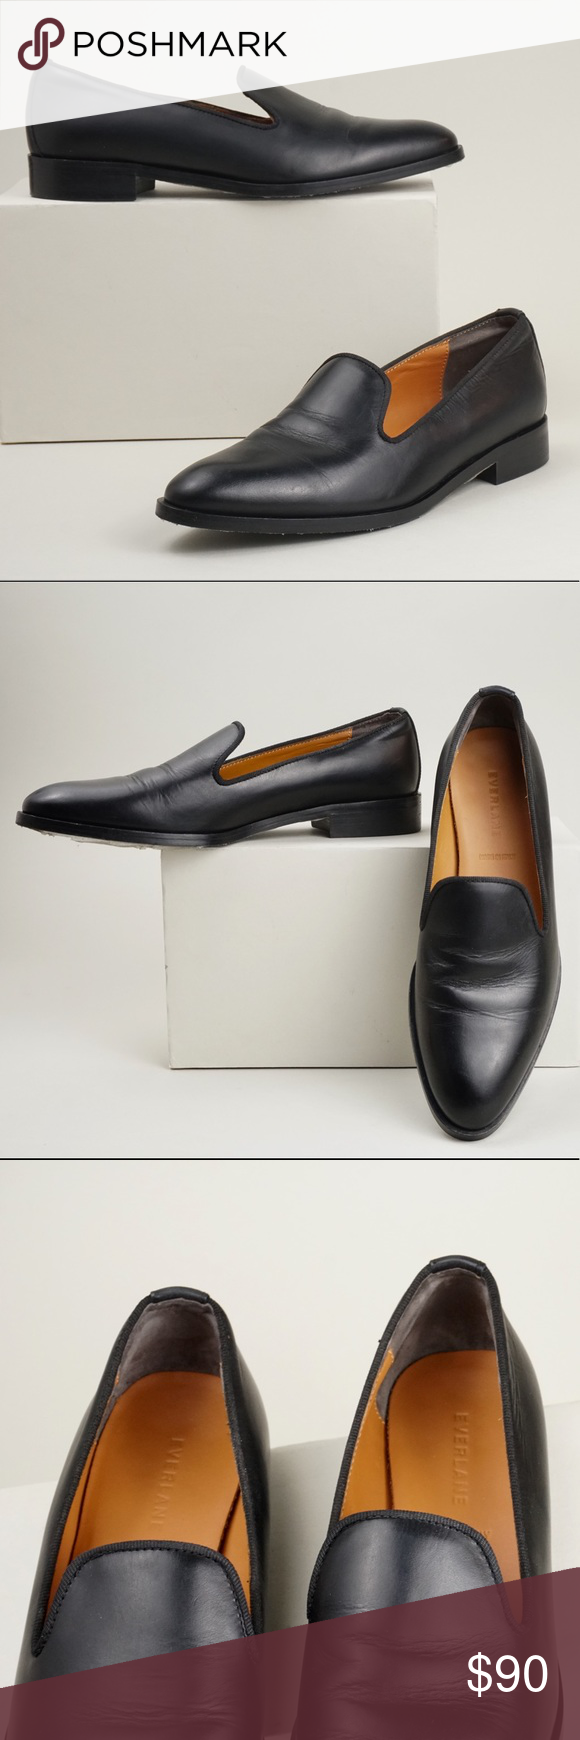 21d6d18dd96 Everlane Black the modern smoking loafer They are in excellent condition